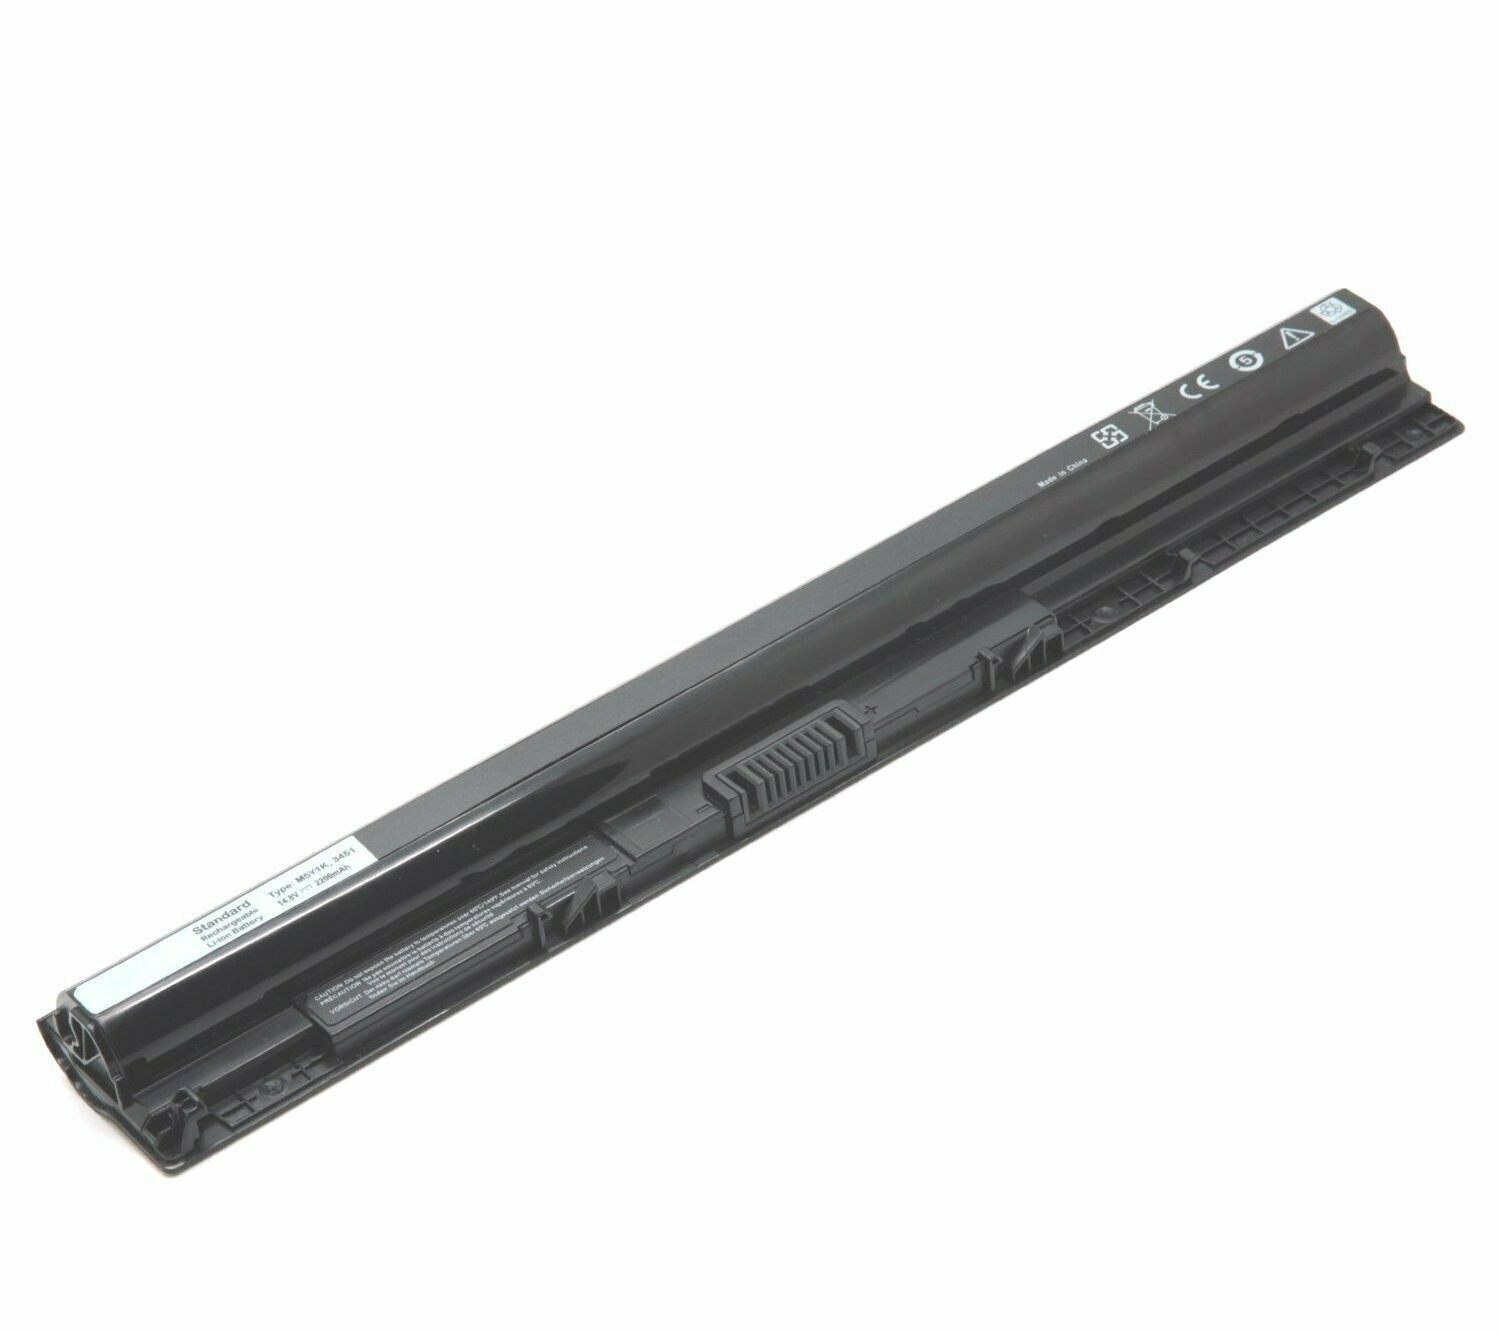 Dell K185W M5Y1K P28E P52F P60G P60G001 P63G compatible laptop battery